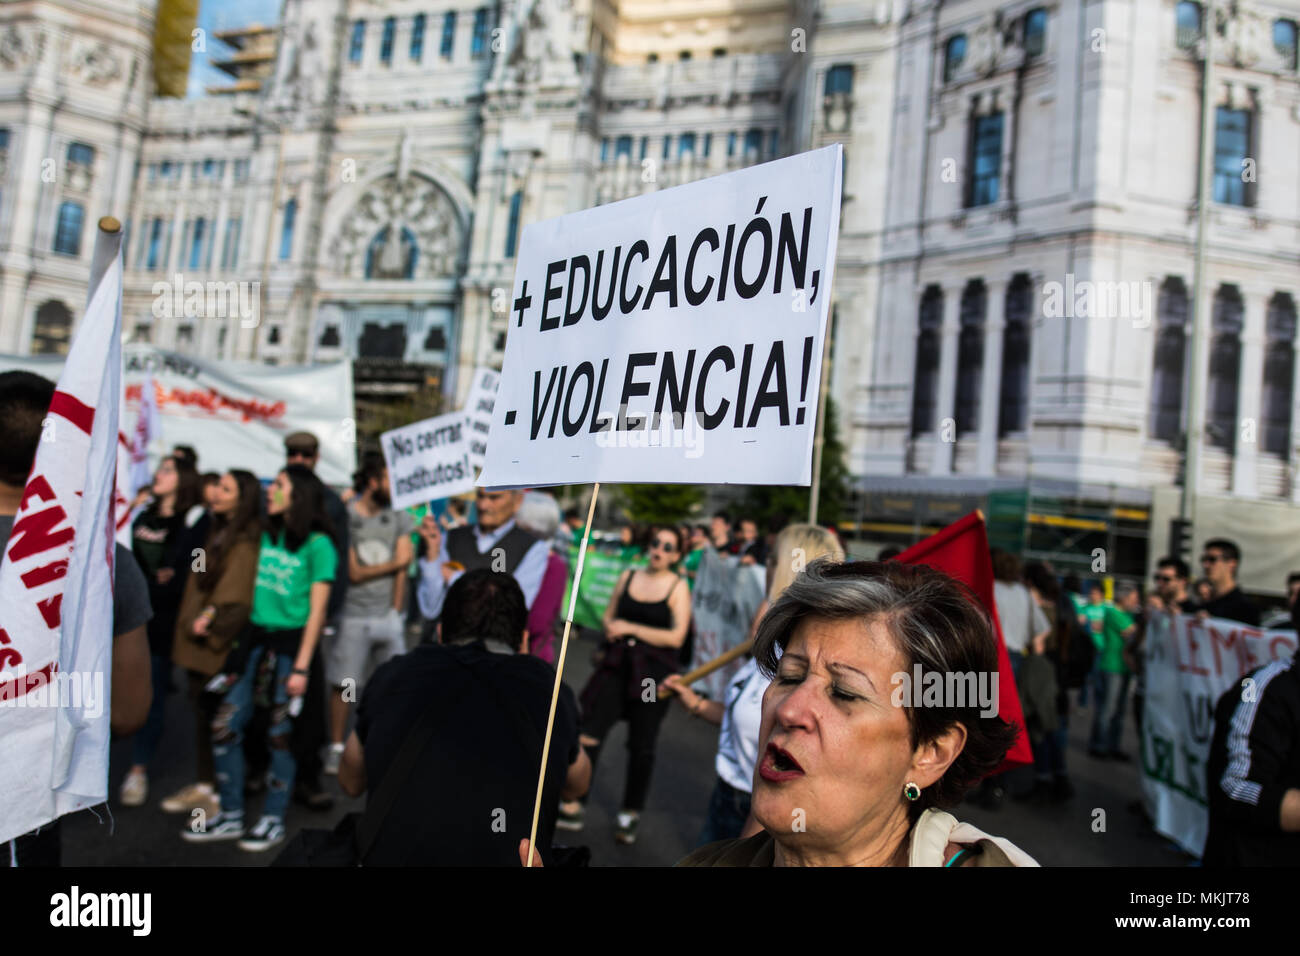 Madrid, Spain. 08th May, 2018. A woman shouts protesting with a placard that reads 'More education, less violence!' during a demonstration against budget cuts in education and against education law (LOMCE), in Madrid, Spain. Credit: Marcos del Mazo/Alamy Live News - Stock Image